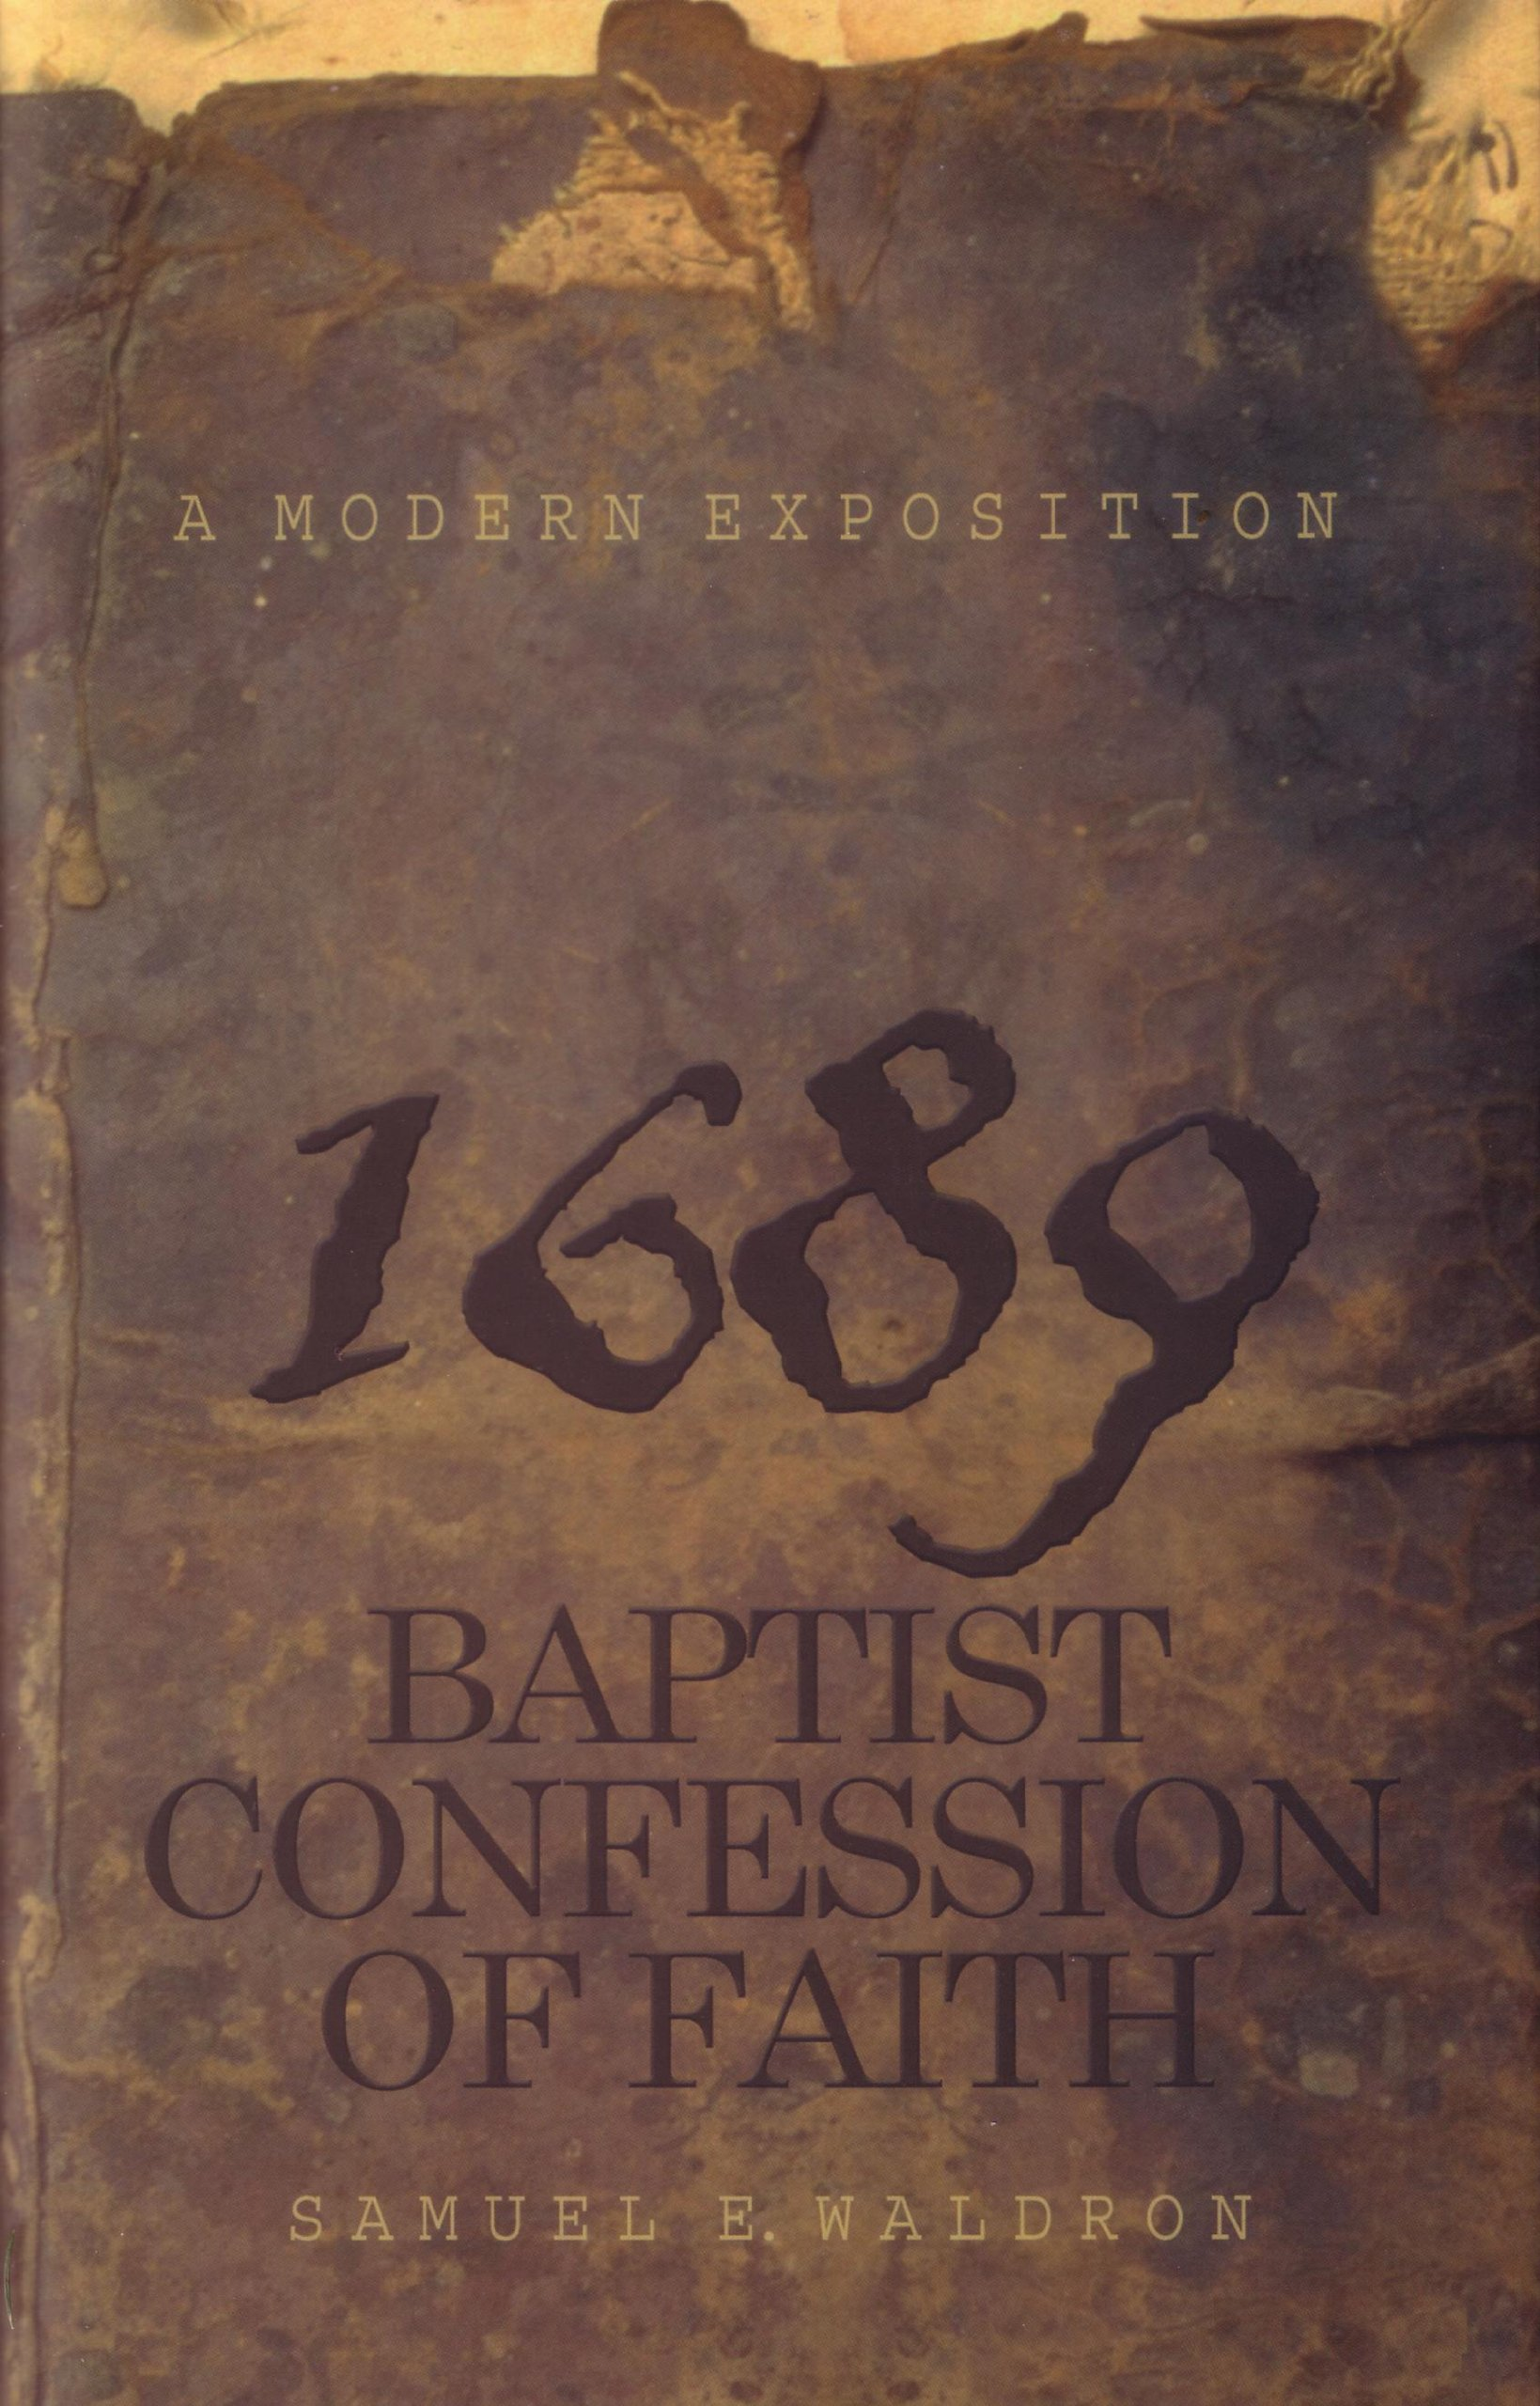 Modern Exposition of 1689 Baptist Confession of Faith: Samuel E. Waldron:  9780852343401: Amazon.com: Books